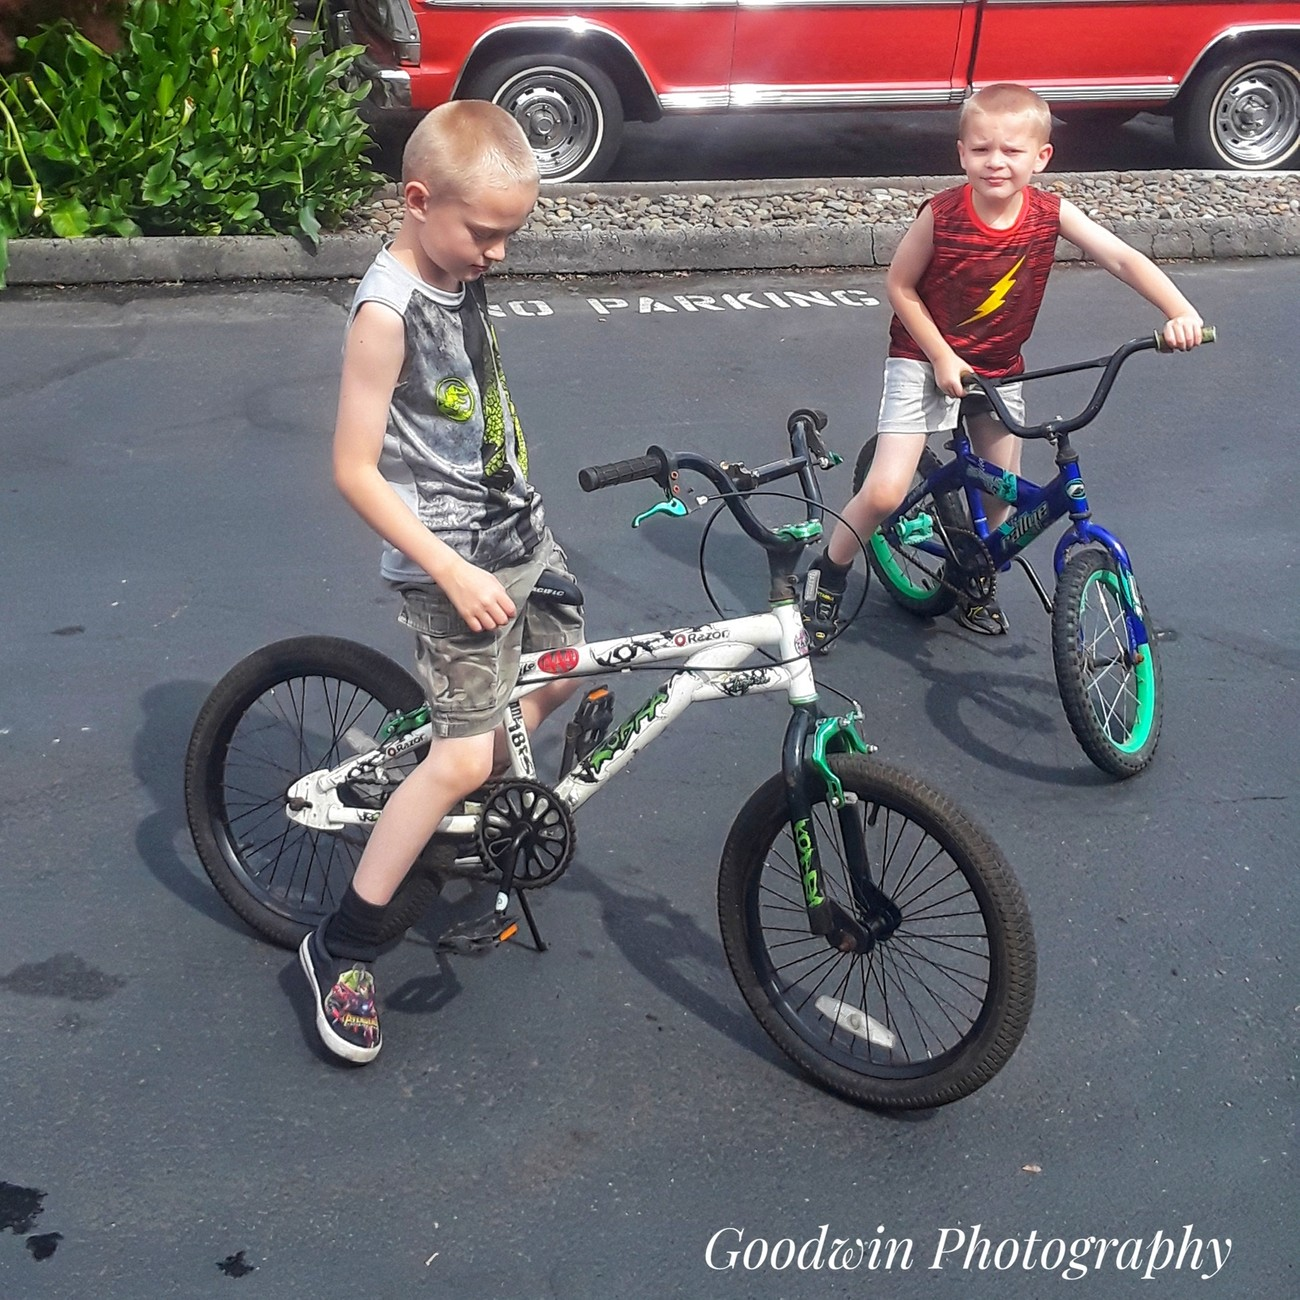 We had the one bike, (blue one) but just found someone giving away the white one, so now they both have bikes.